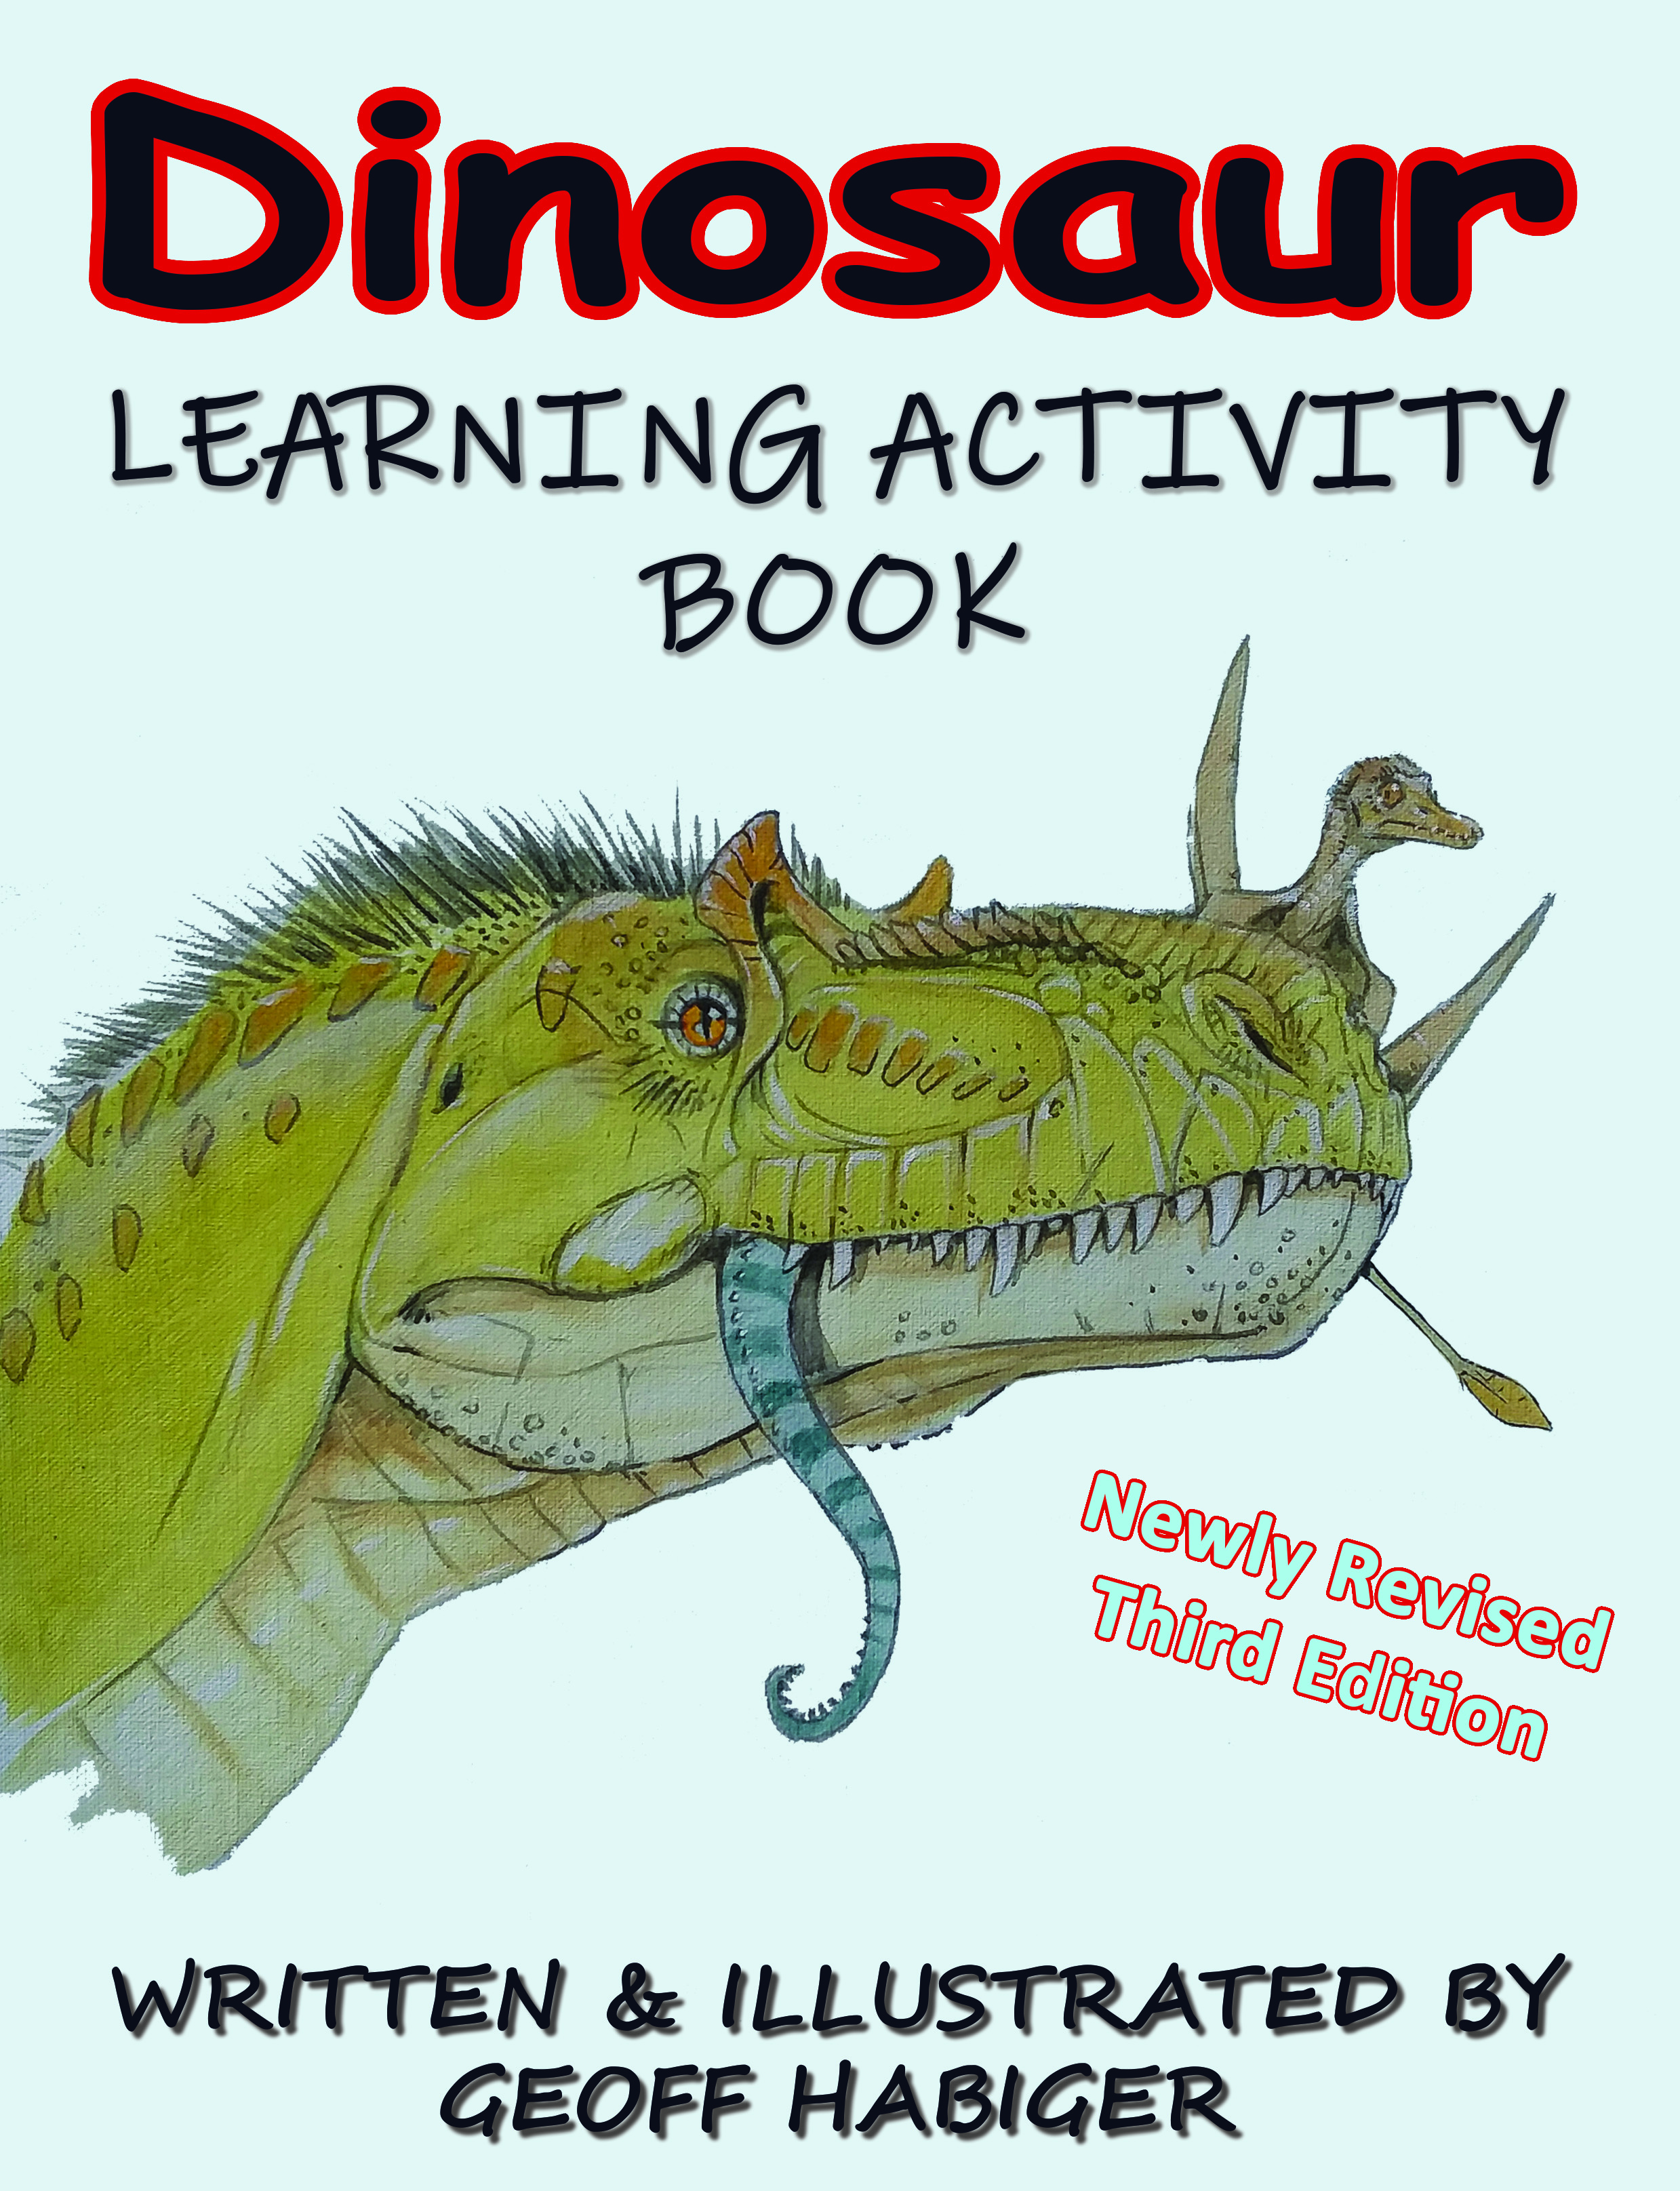 Dinosaur Learning Activity Book